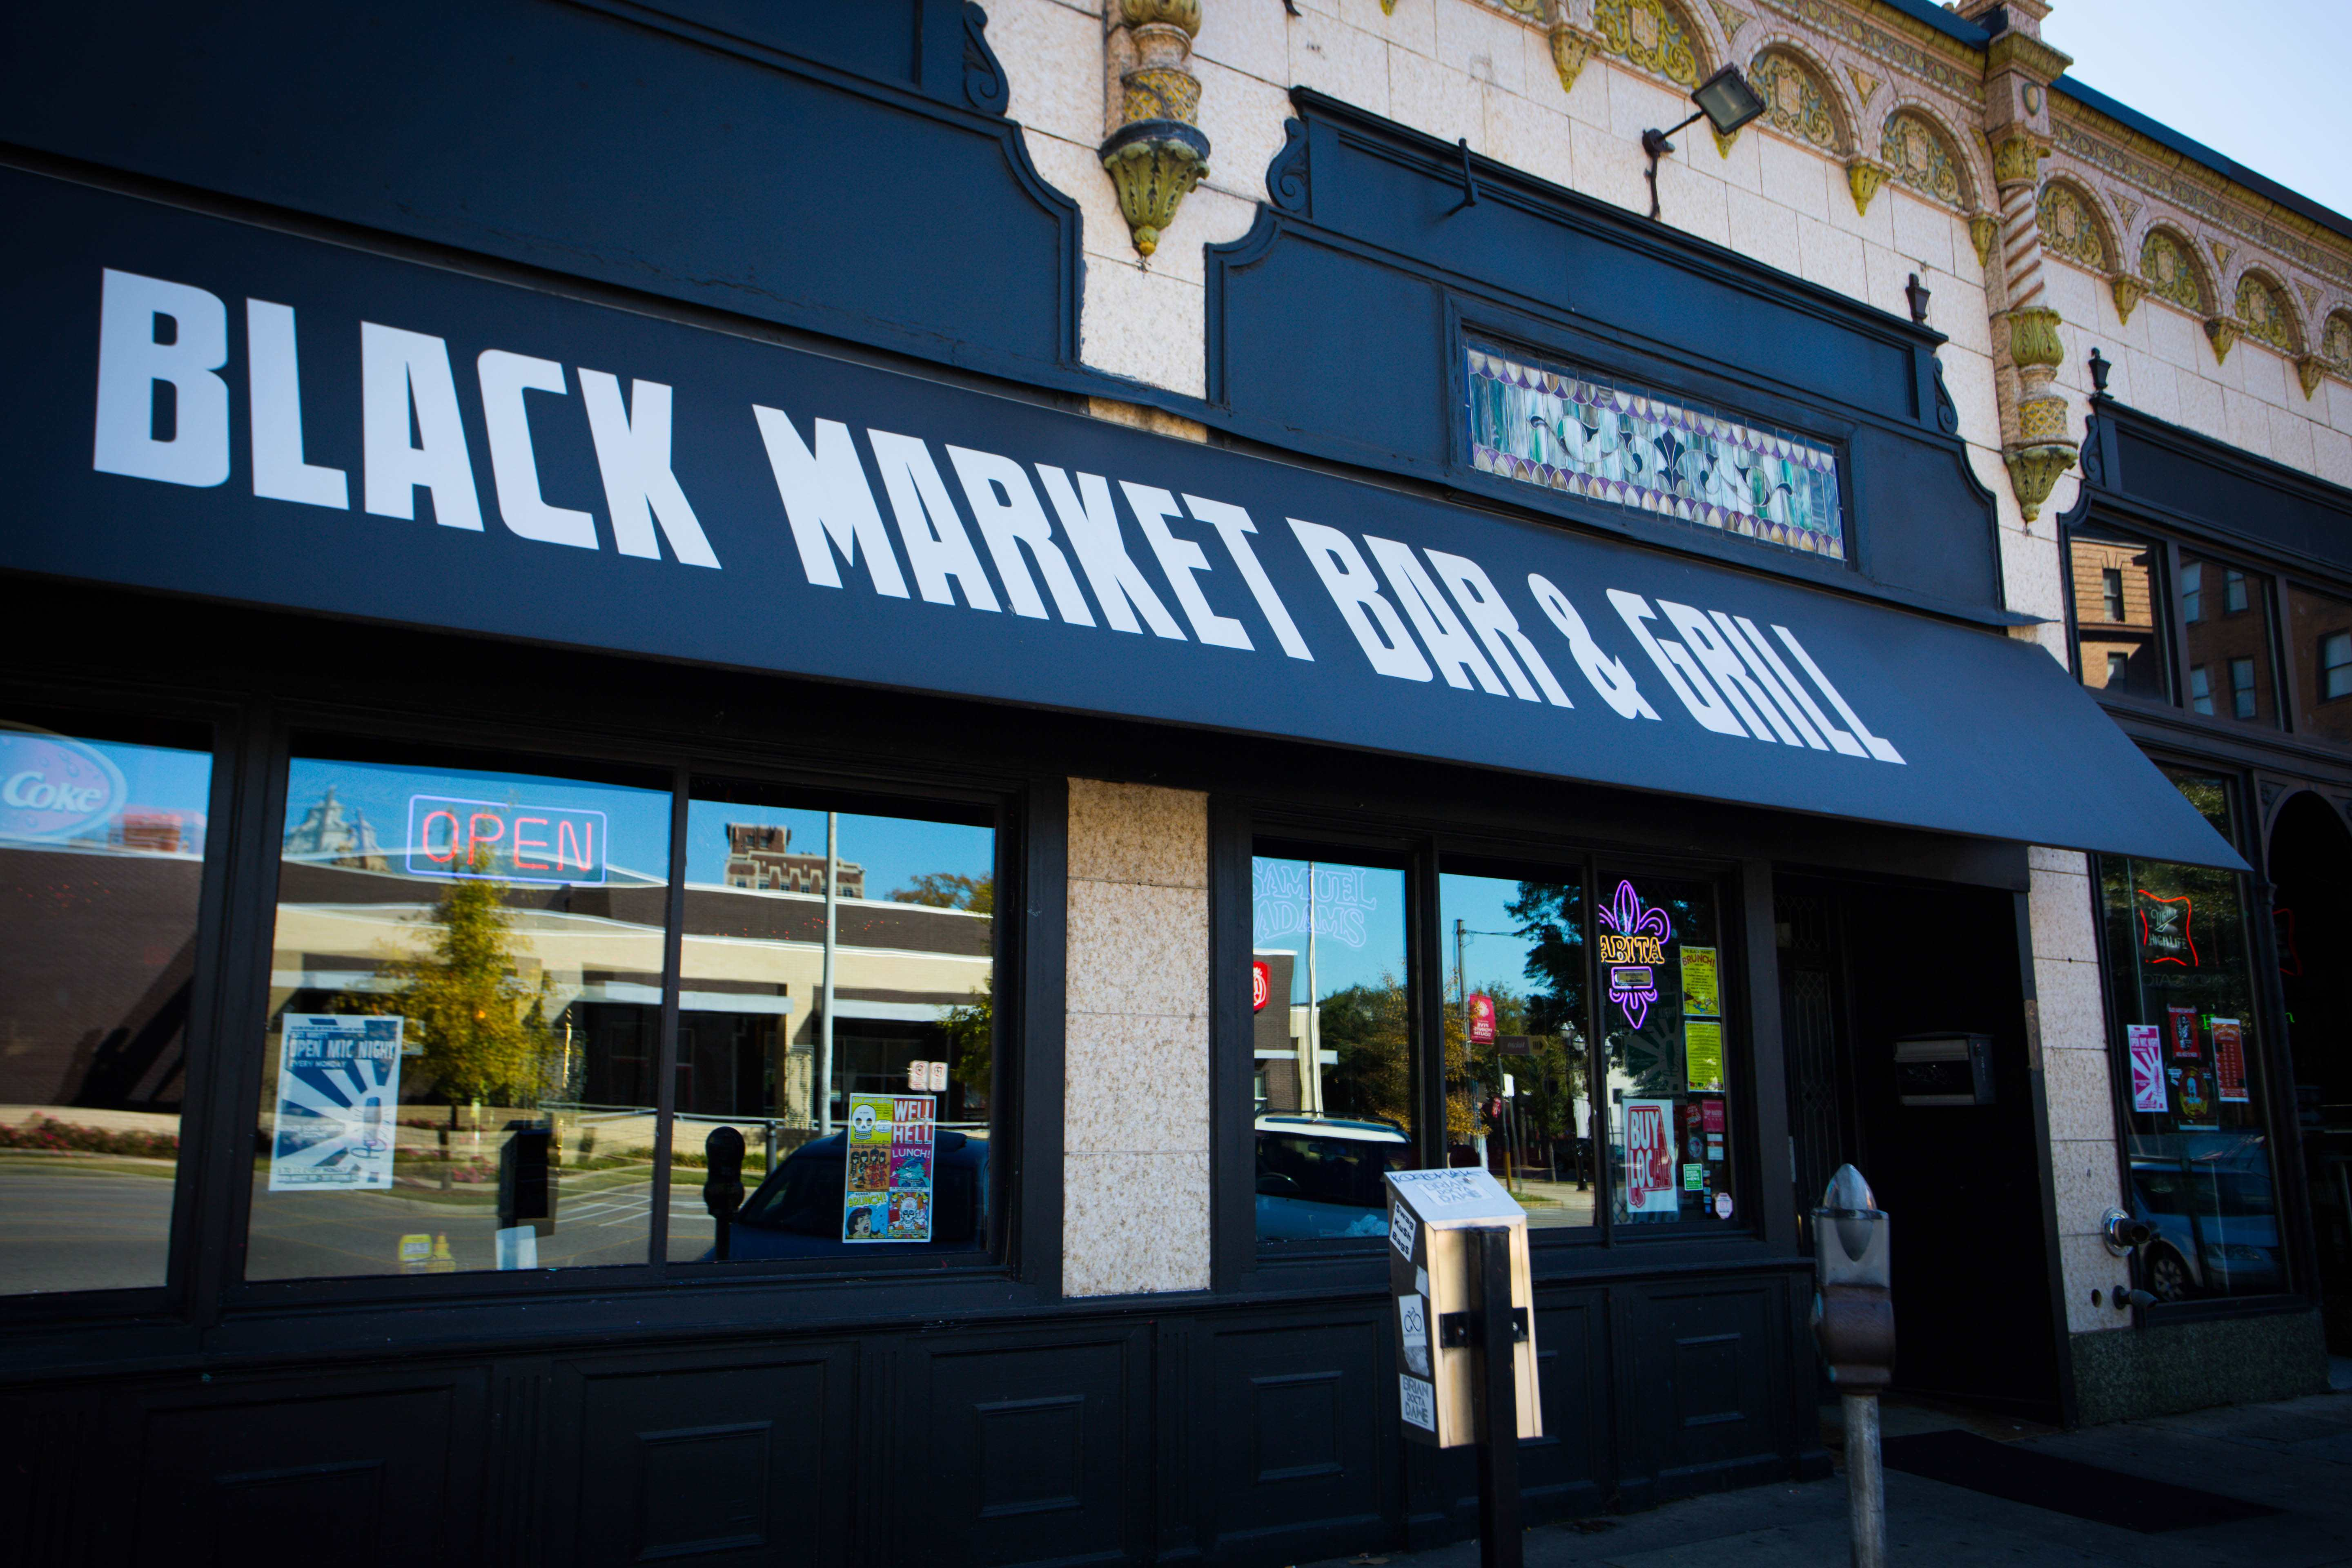 black market bar and grill Archives - H2 Real Estate